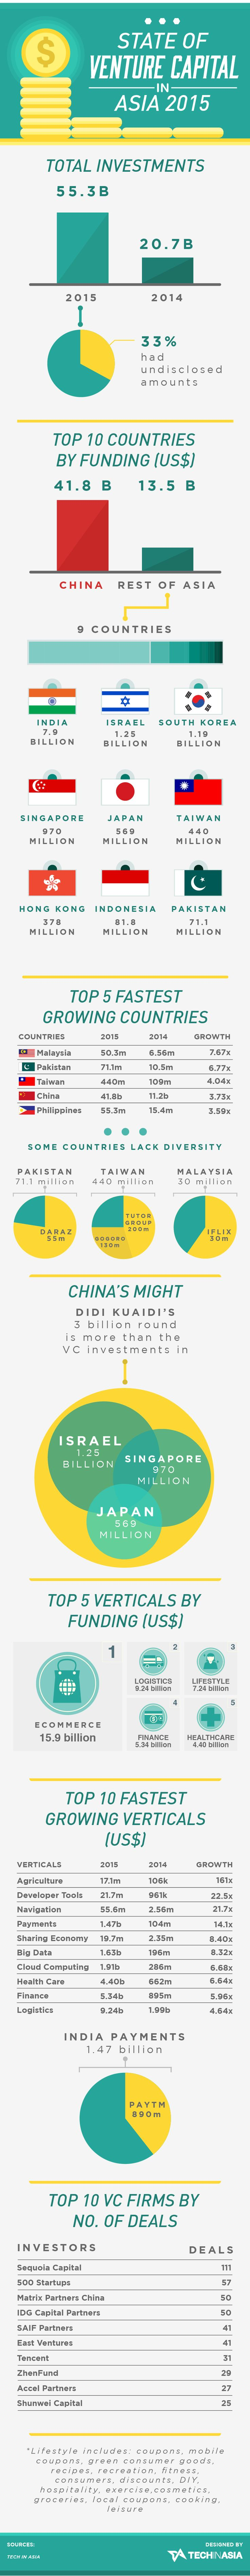 Venture capital investments in the region saw a record year in 2015. Here's a breakdown of what happened.